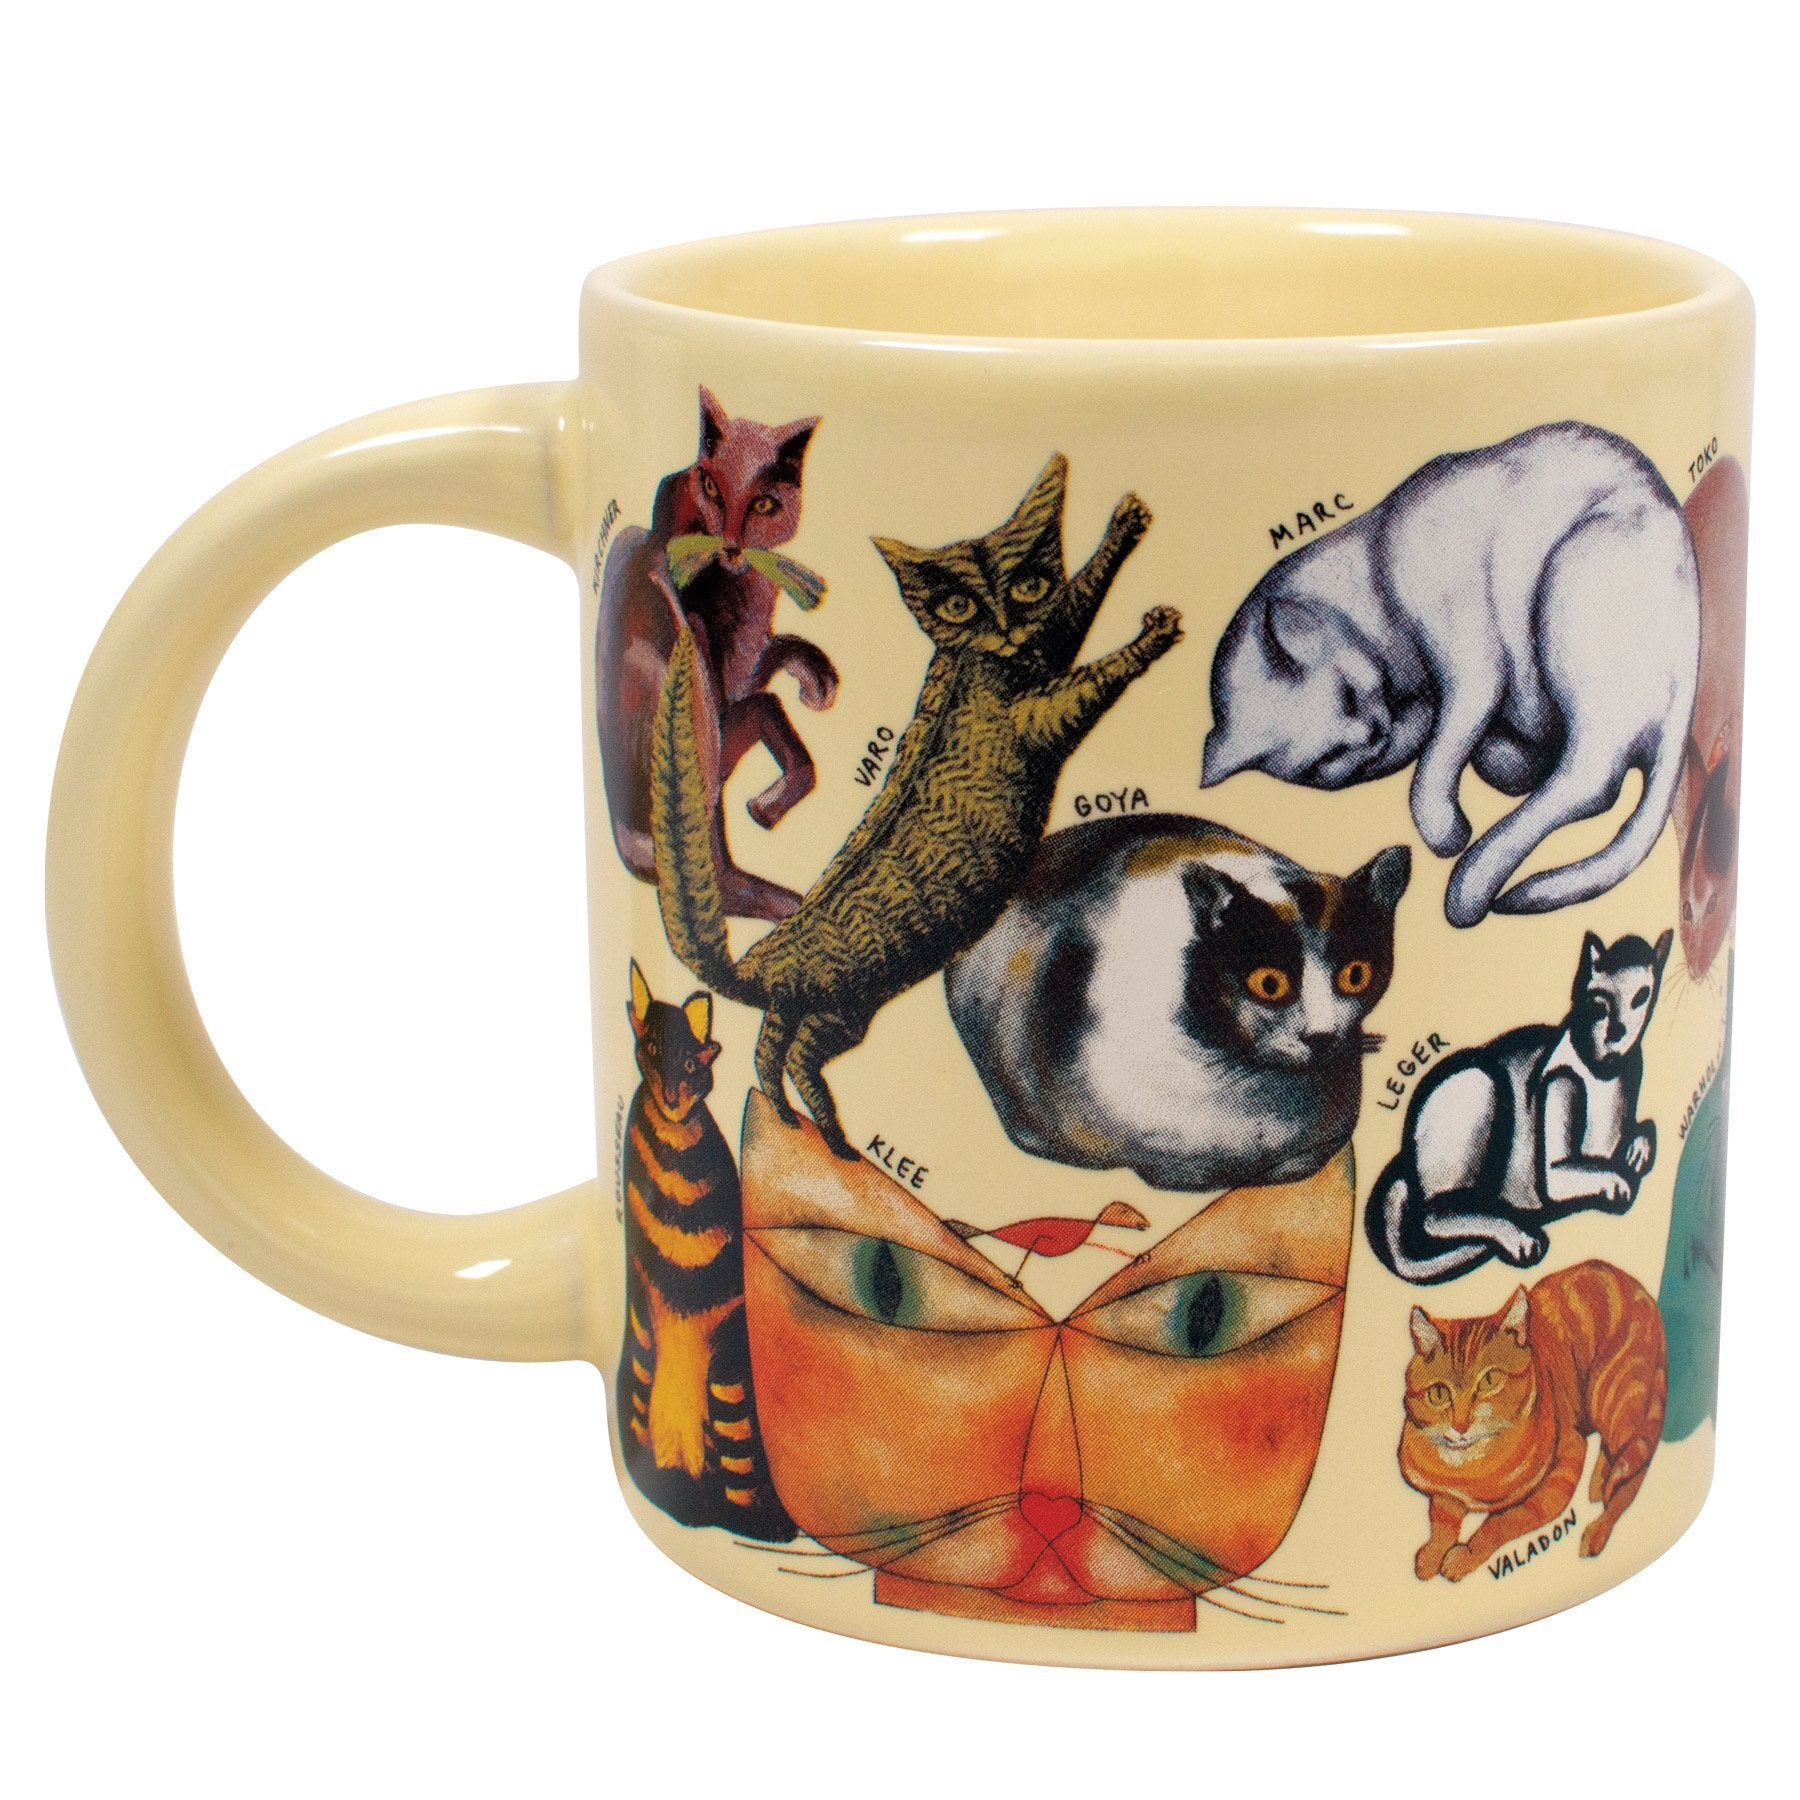 The Artistic Cat Mug